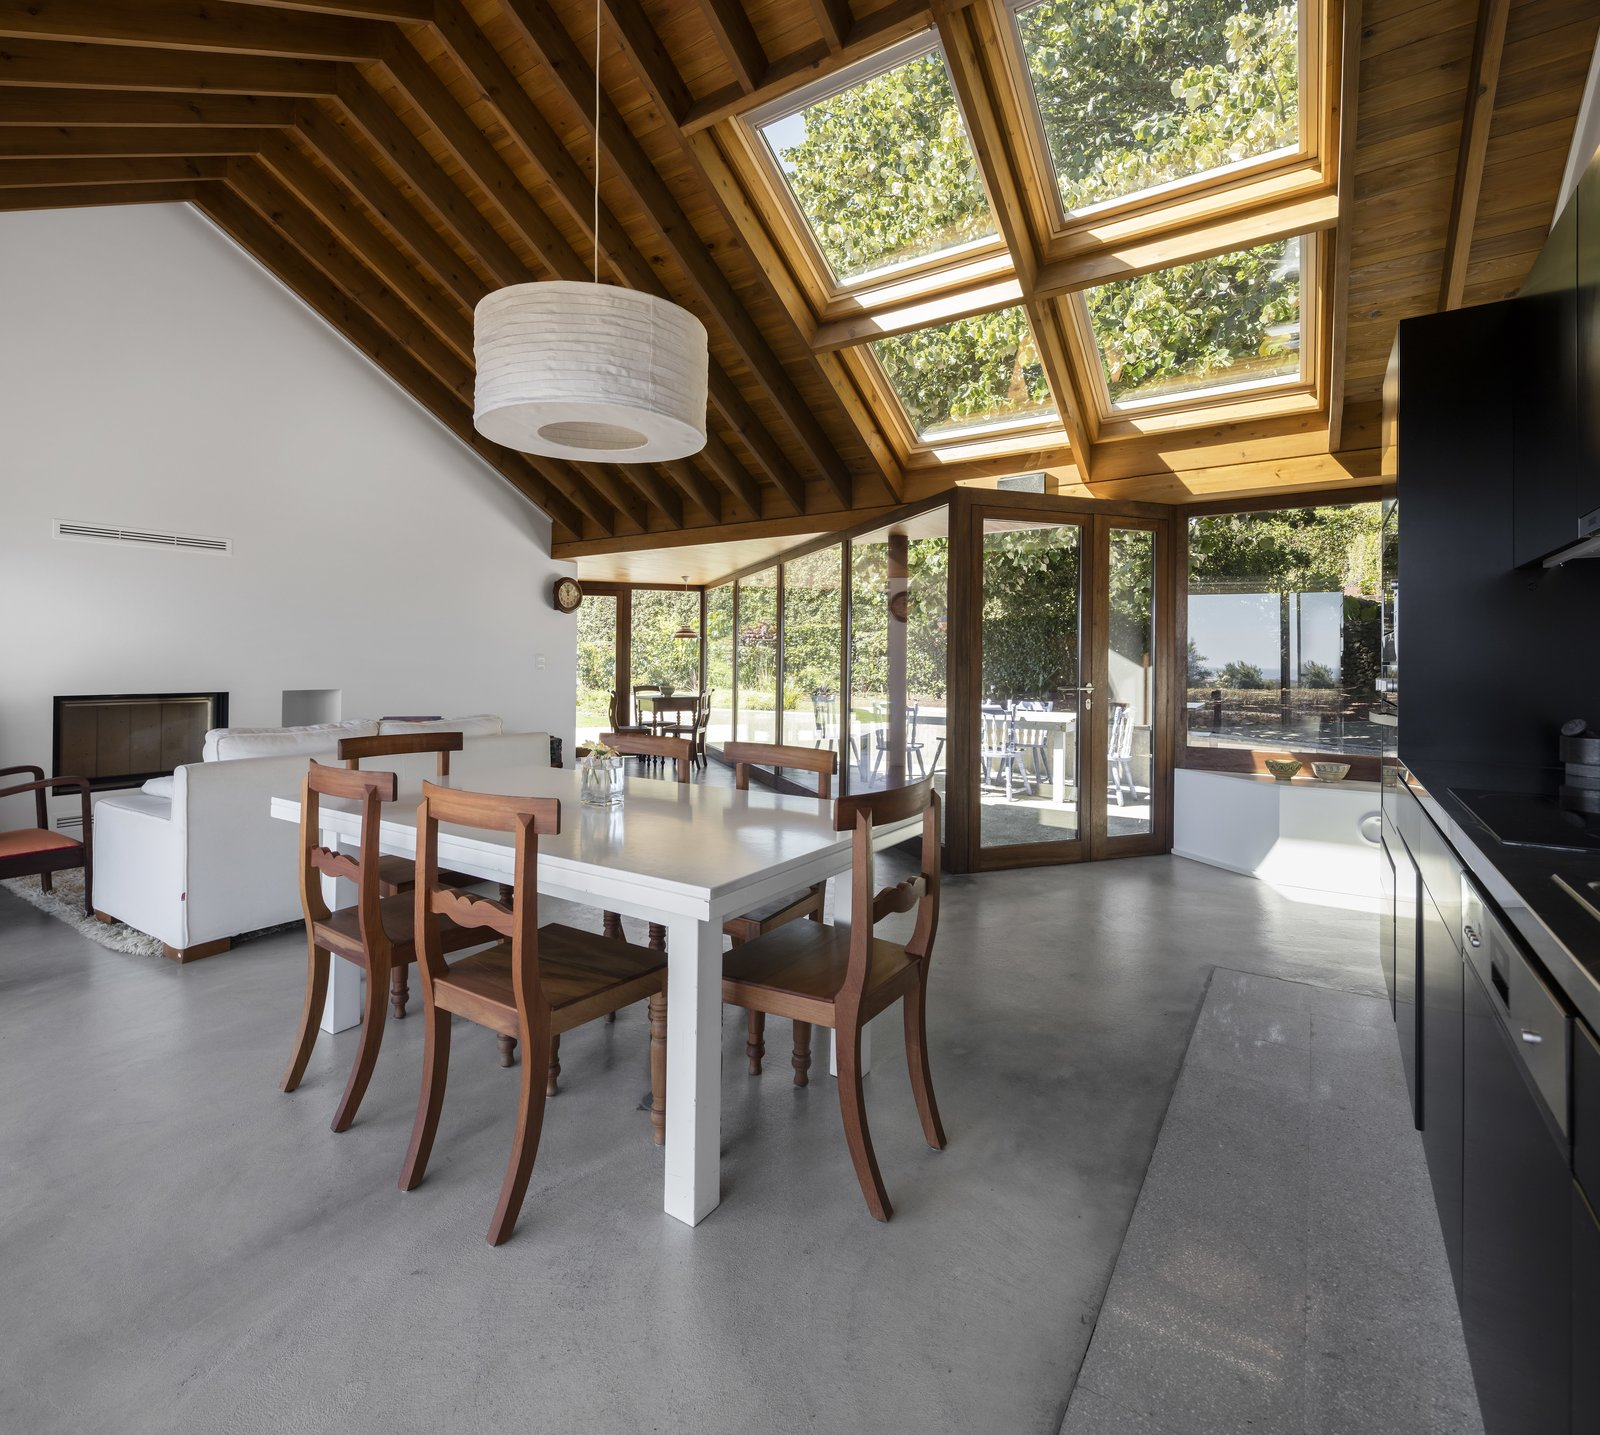 Dining Room, Concrete Floor, Chair, and Table A simple, open plan living, dining and kitchen area that almost feels like part of the courtyard outdoors.  Photo 9 of 14 in A Bright Red Island Residence Embraces a Linden Tree